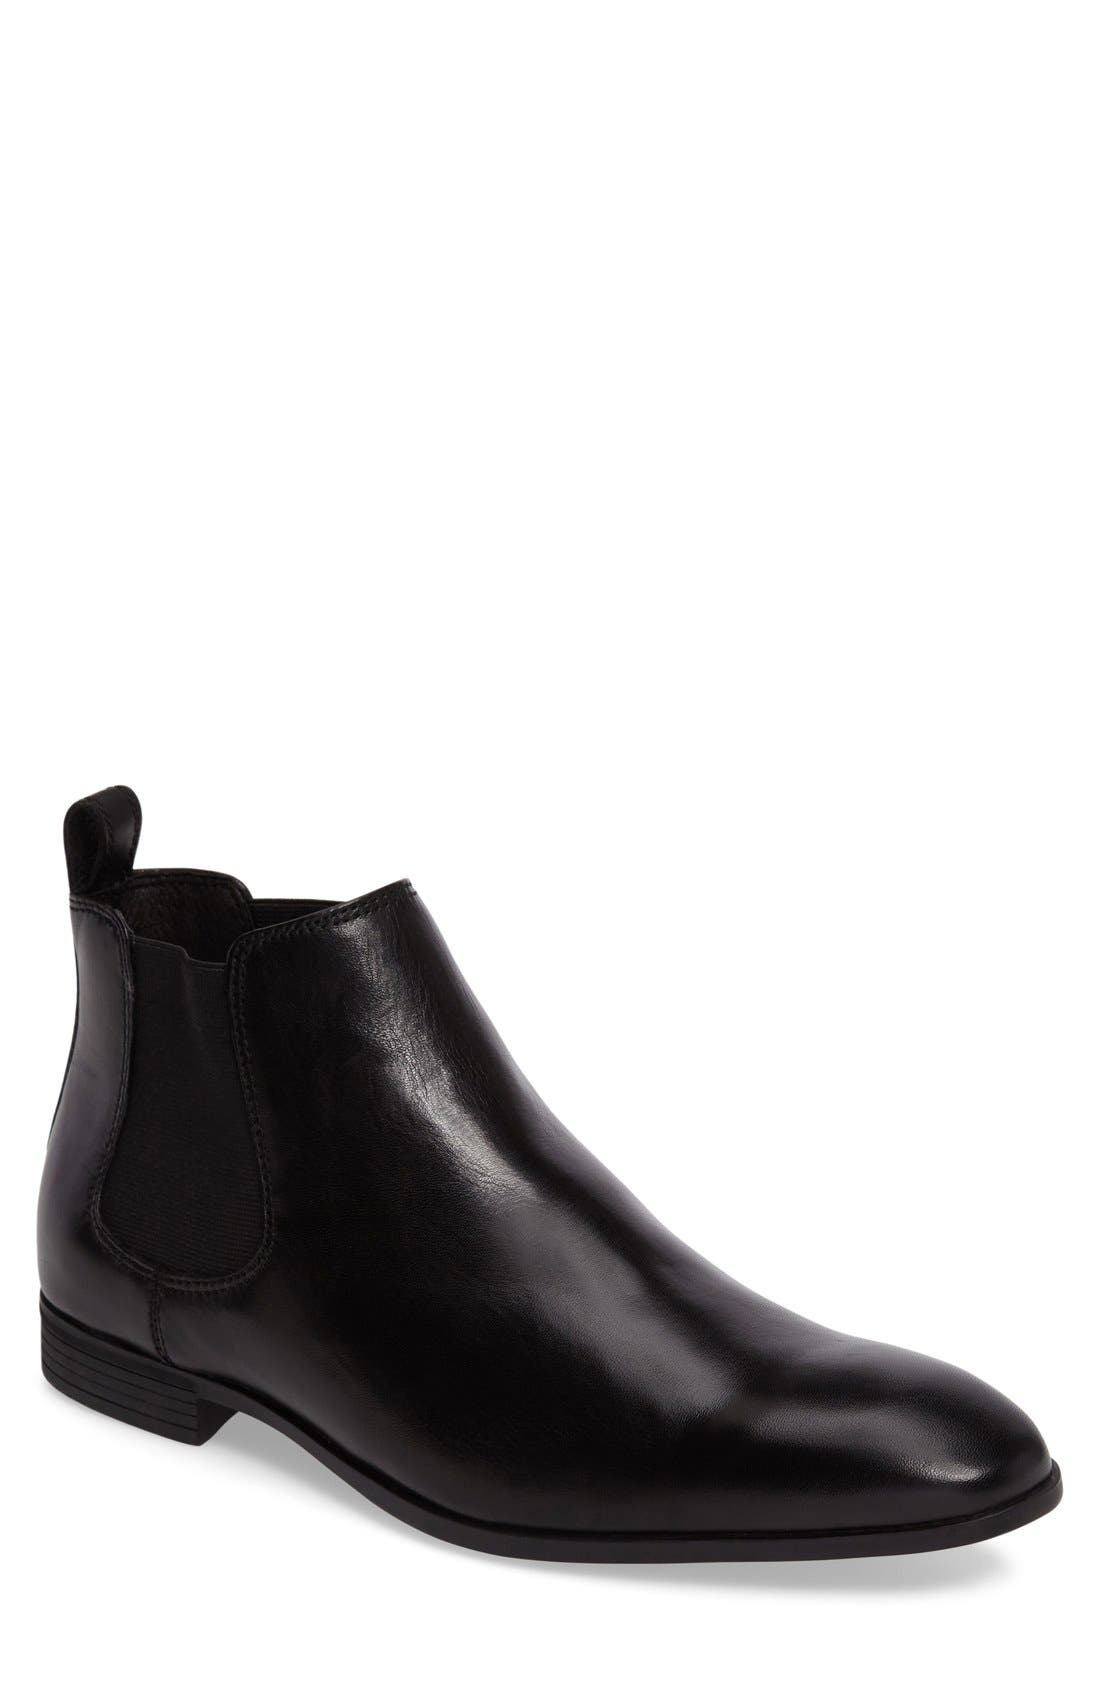 'Huntley' Chelsea Boot,                             Main thumbnail 1, color,                             Black Leather